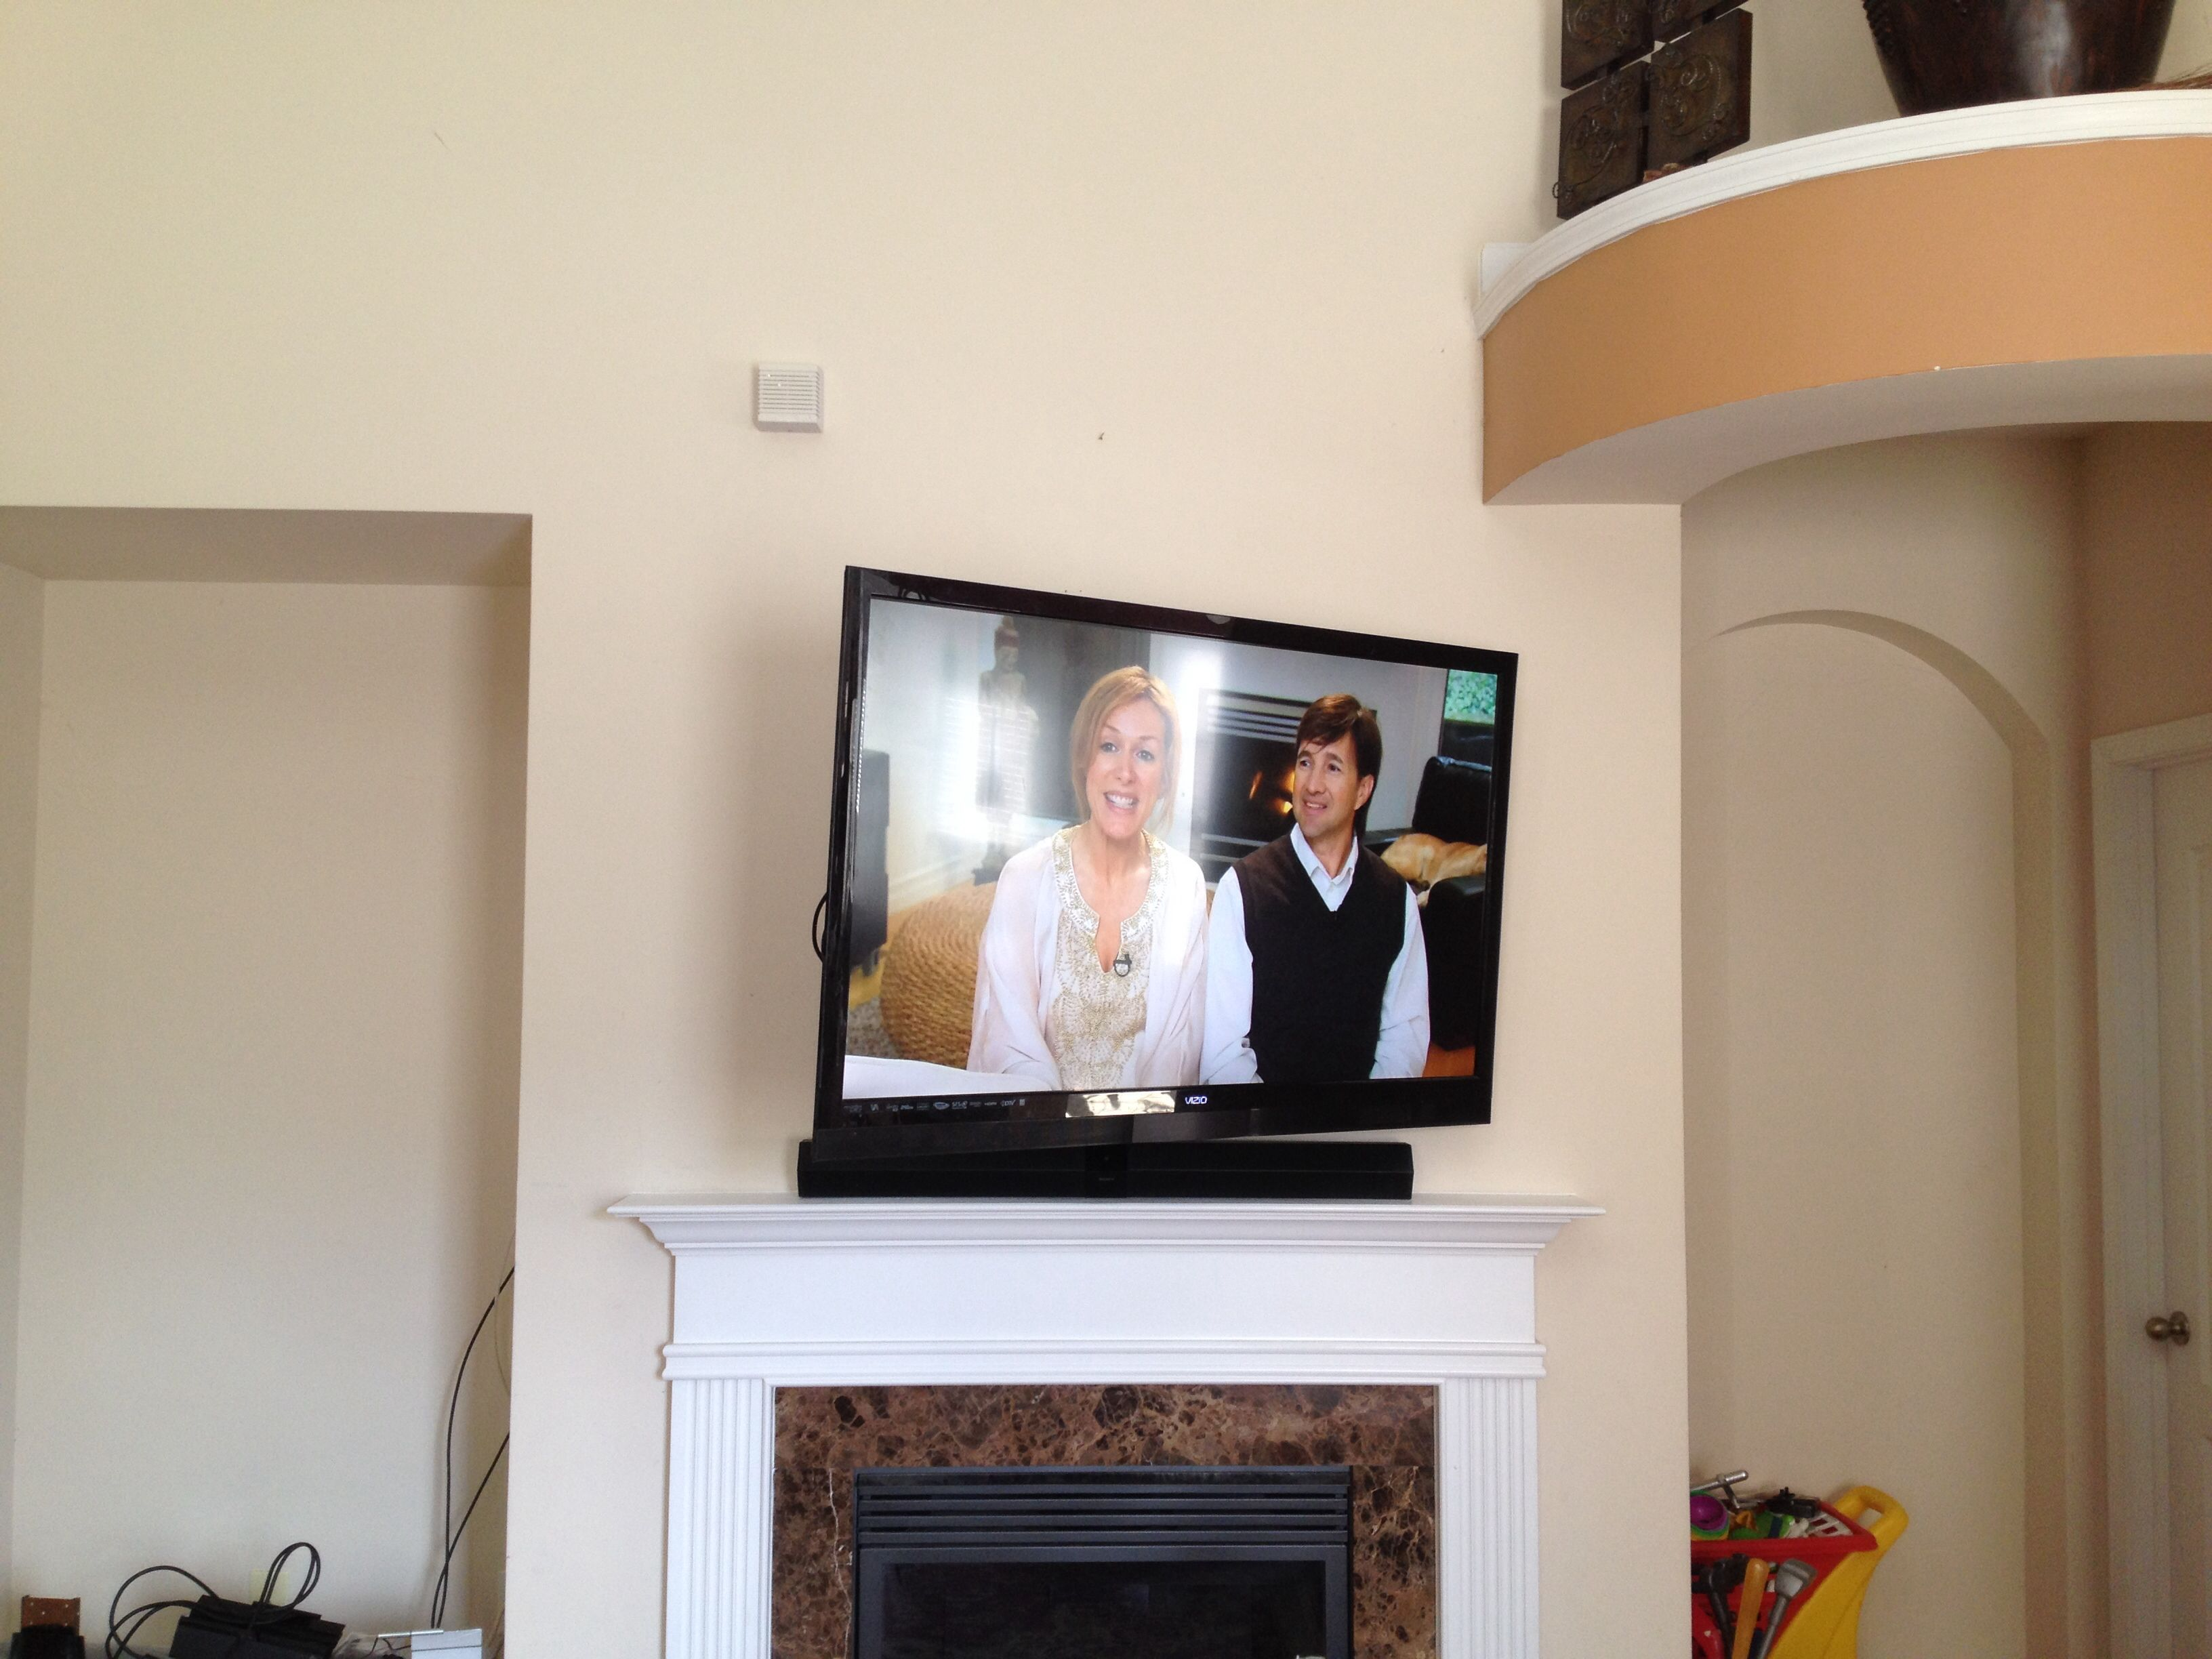 60 Vizio Flatscreen Tv Full Motion Wall Mount Installation With Sound Bar Over Fireplace Mantle